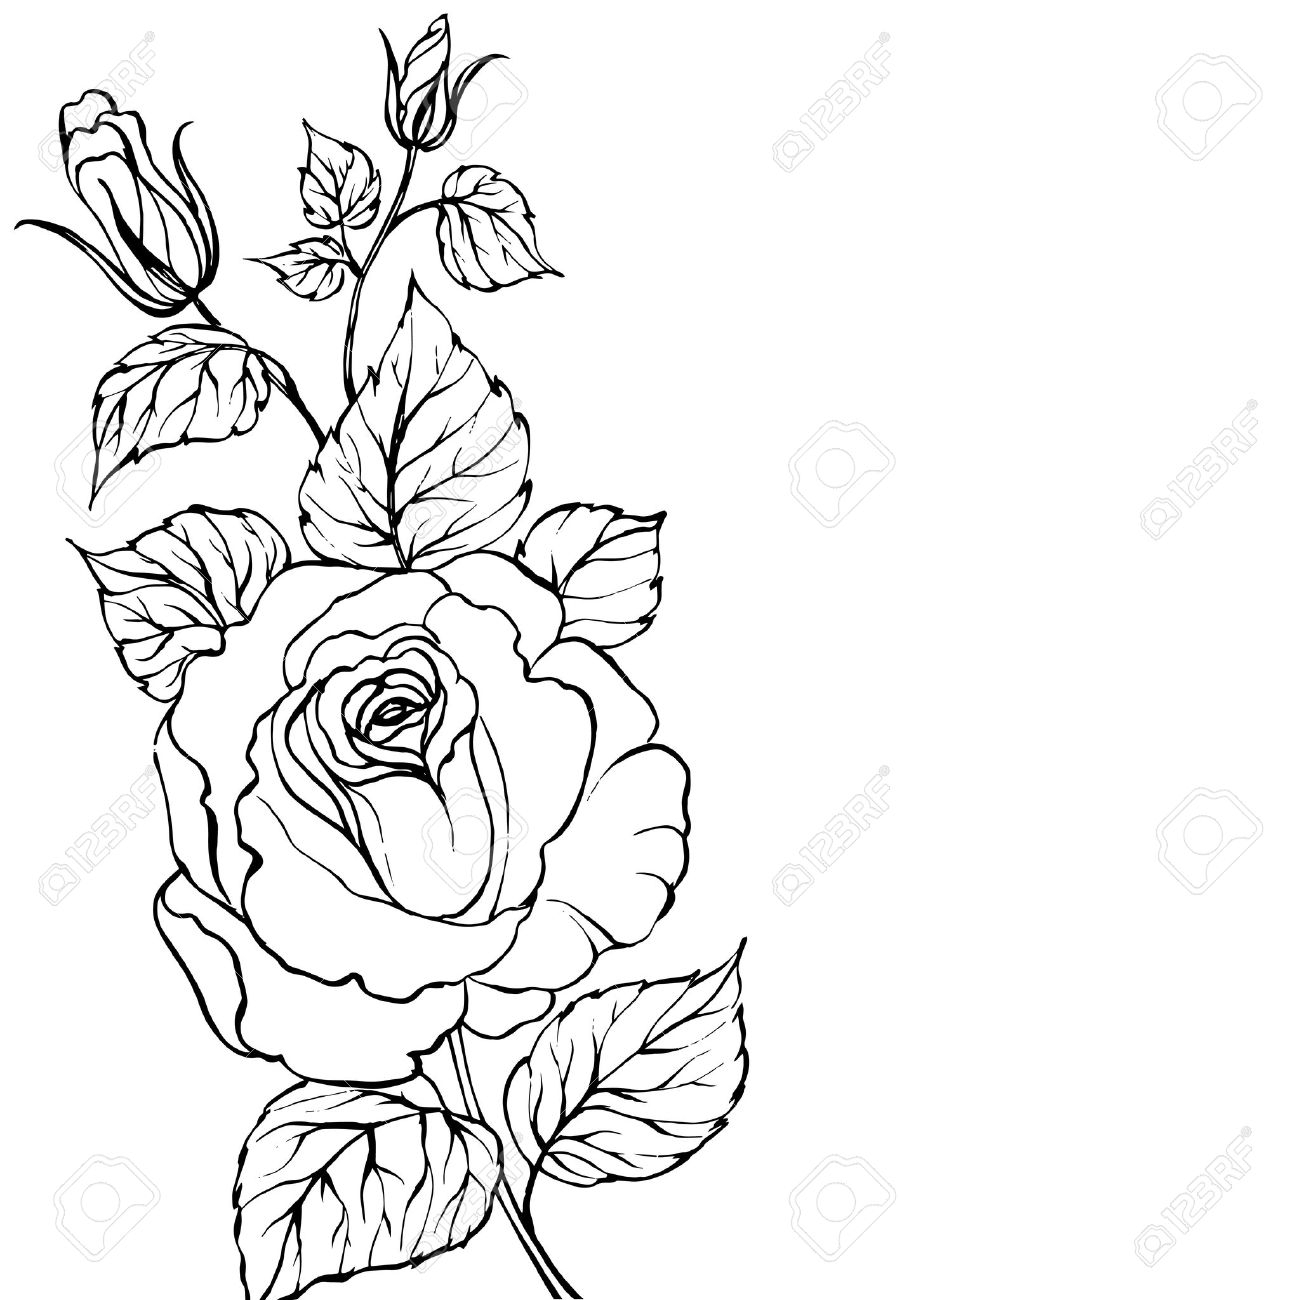 Rose Drawing Outlines At Getdrawings Com Free For Personal Use